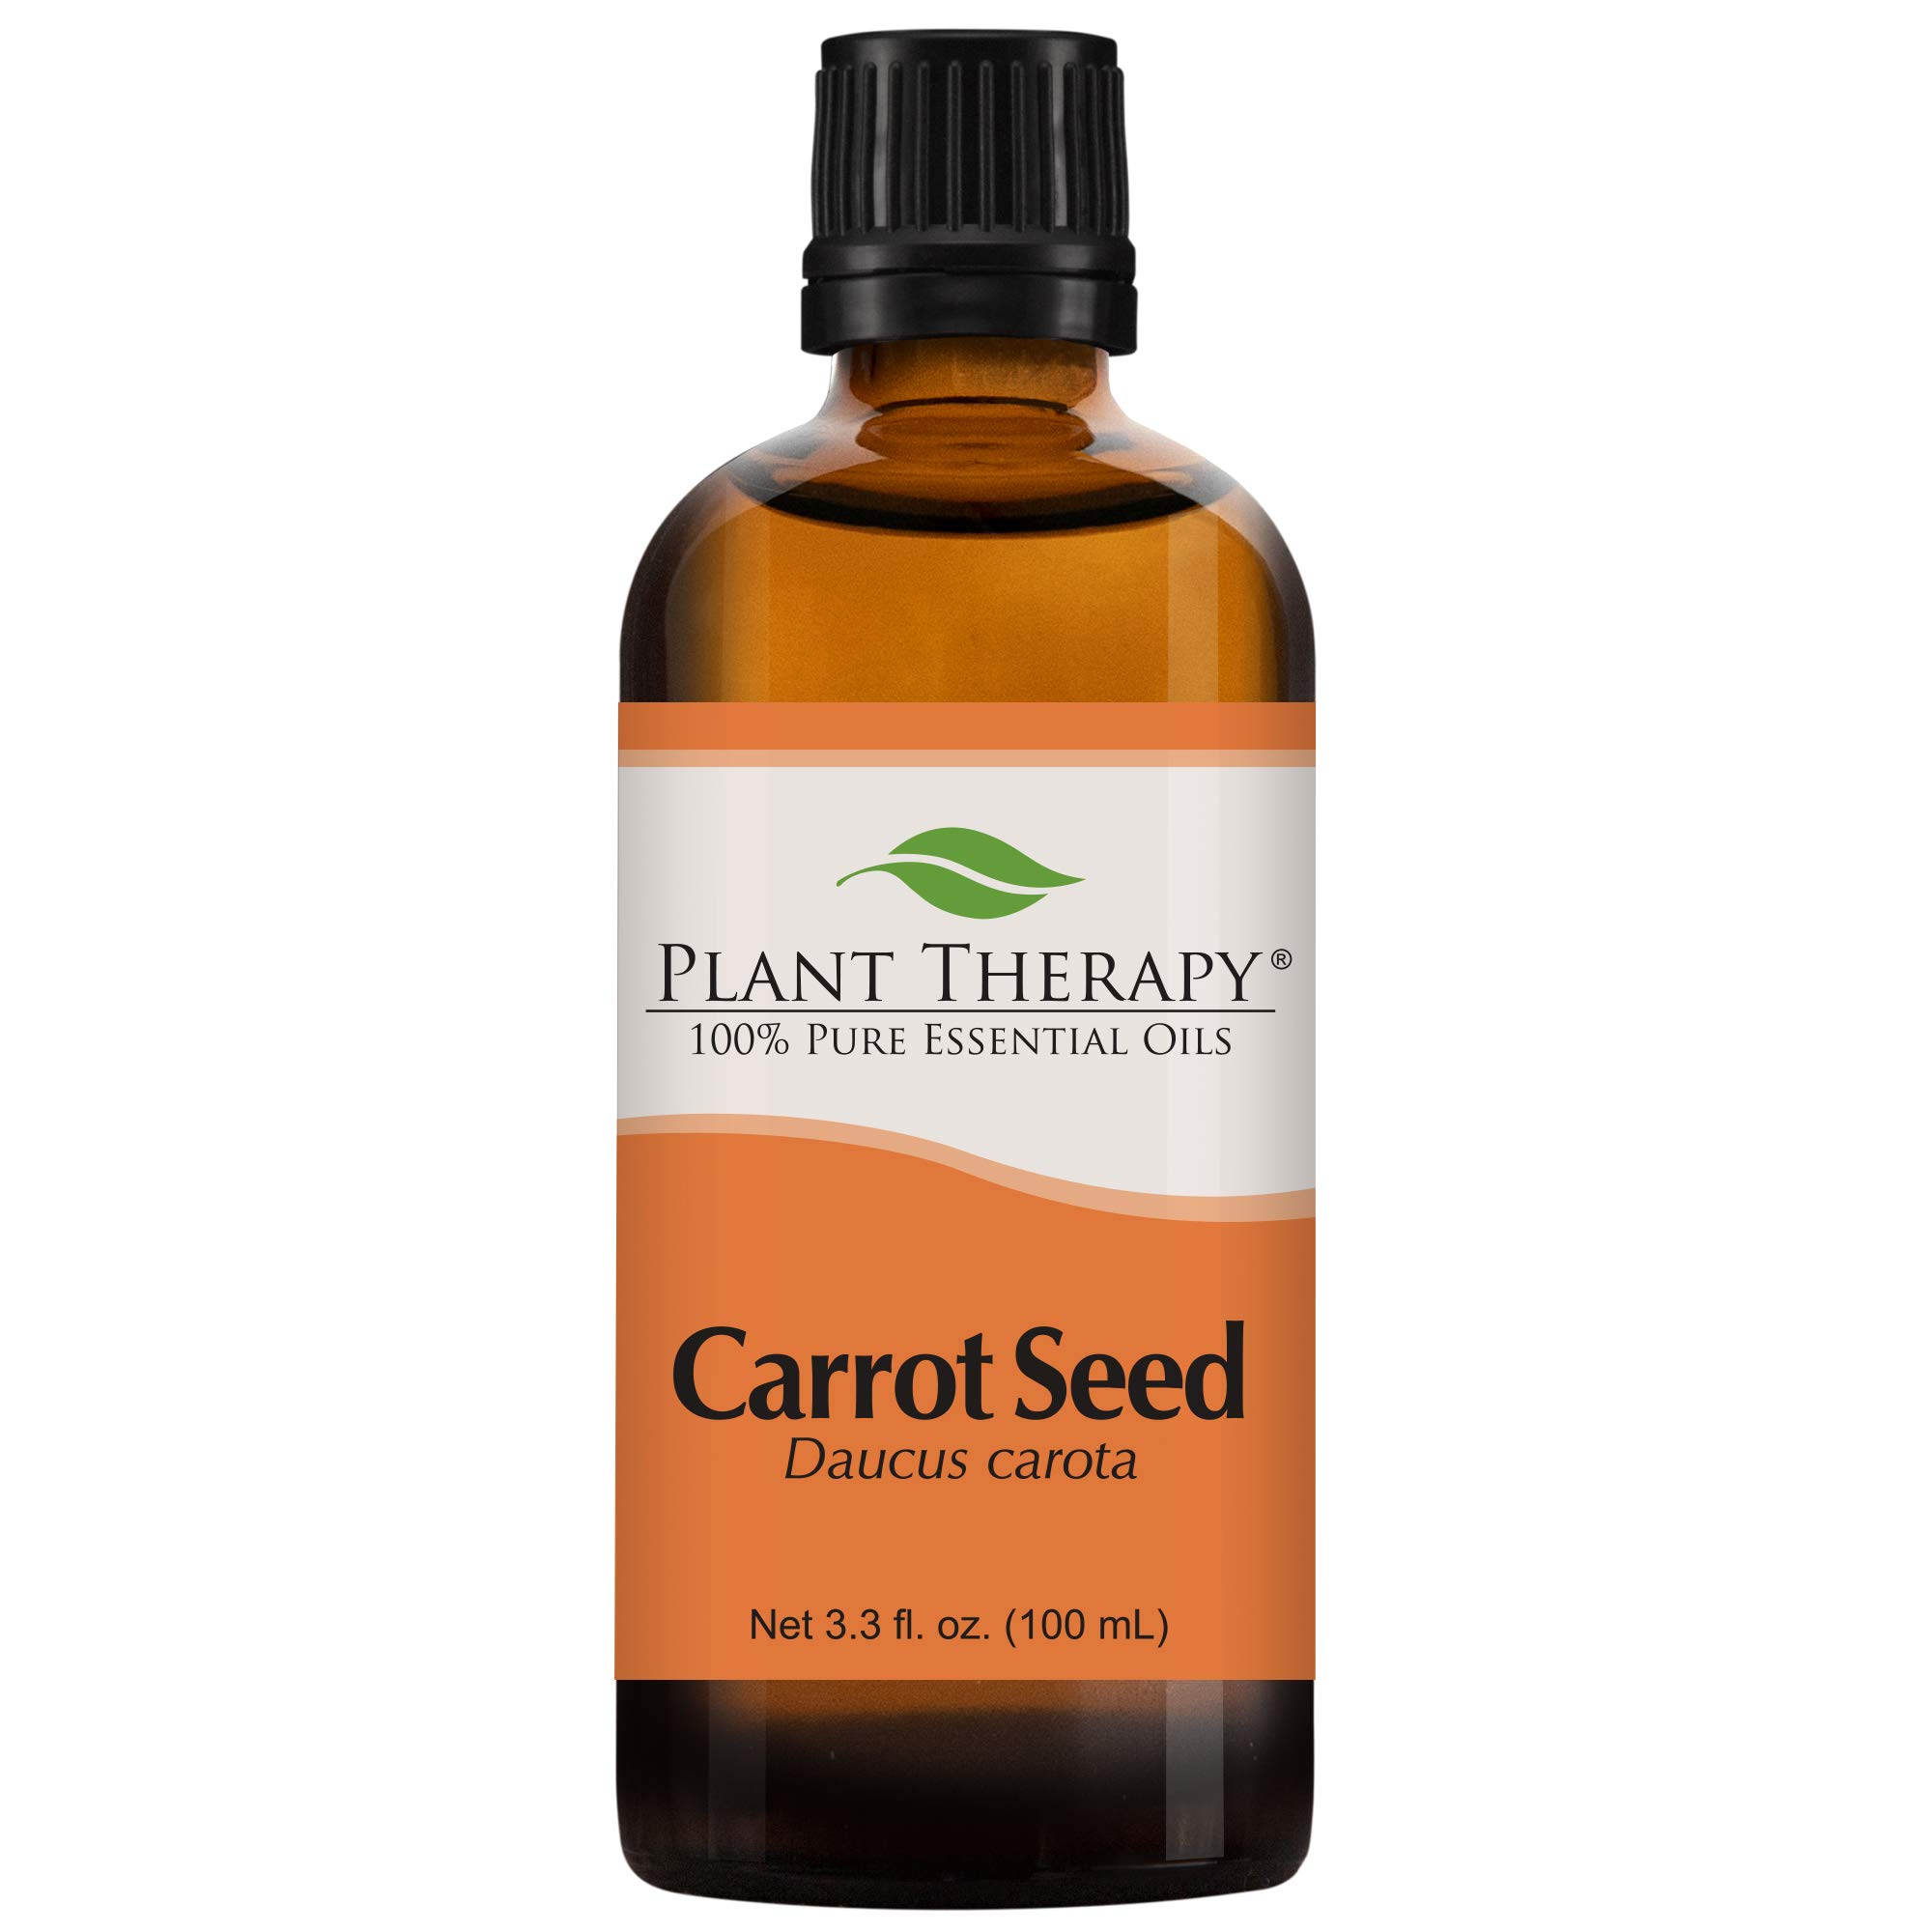 Plant Therapy Carrot Seed Essential Oil 100% Pure, Undiluted, Natural Aromatherapy, Therapeutic Grade 100 mL (3.3 oz) by Plant Therapy